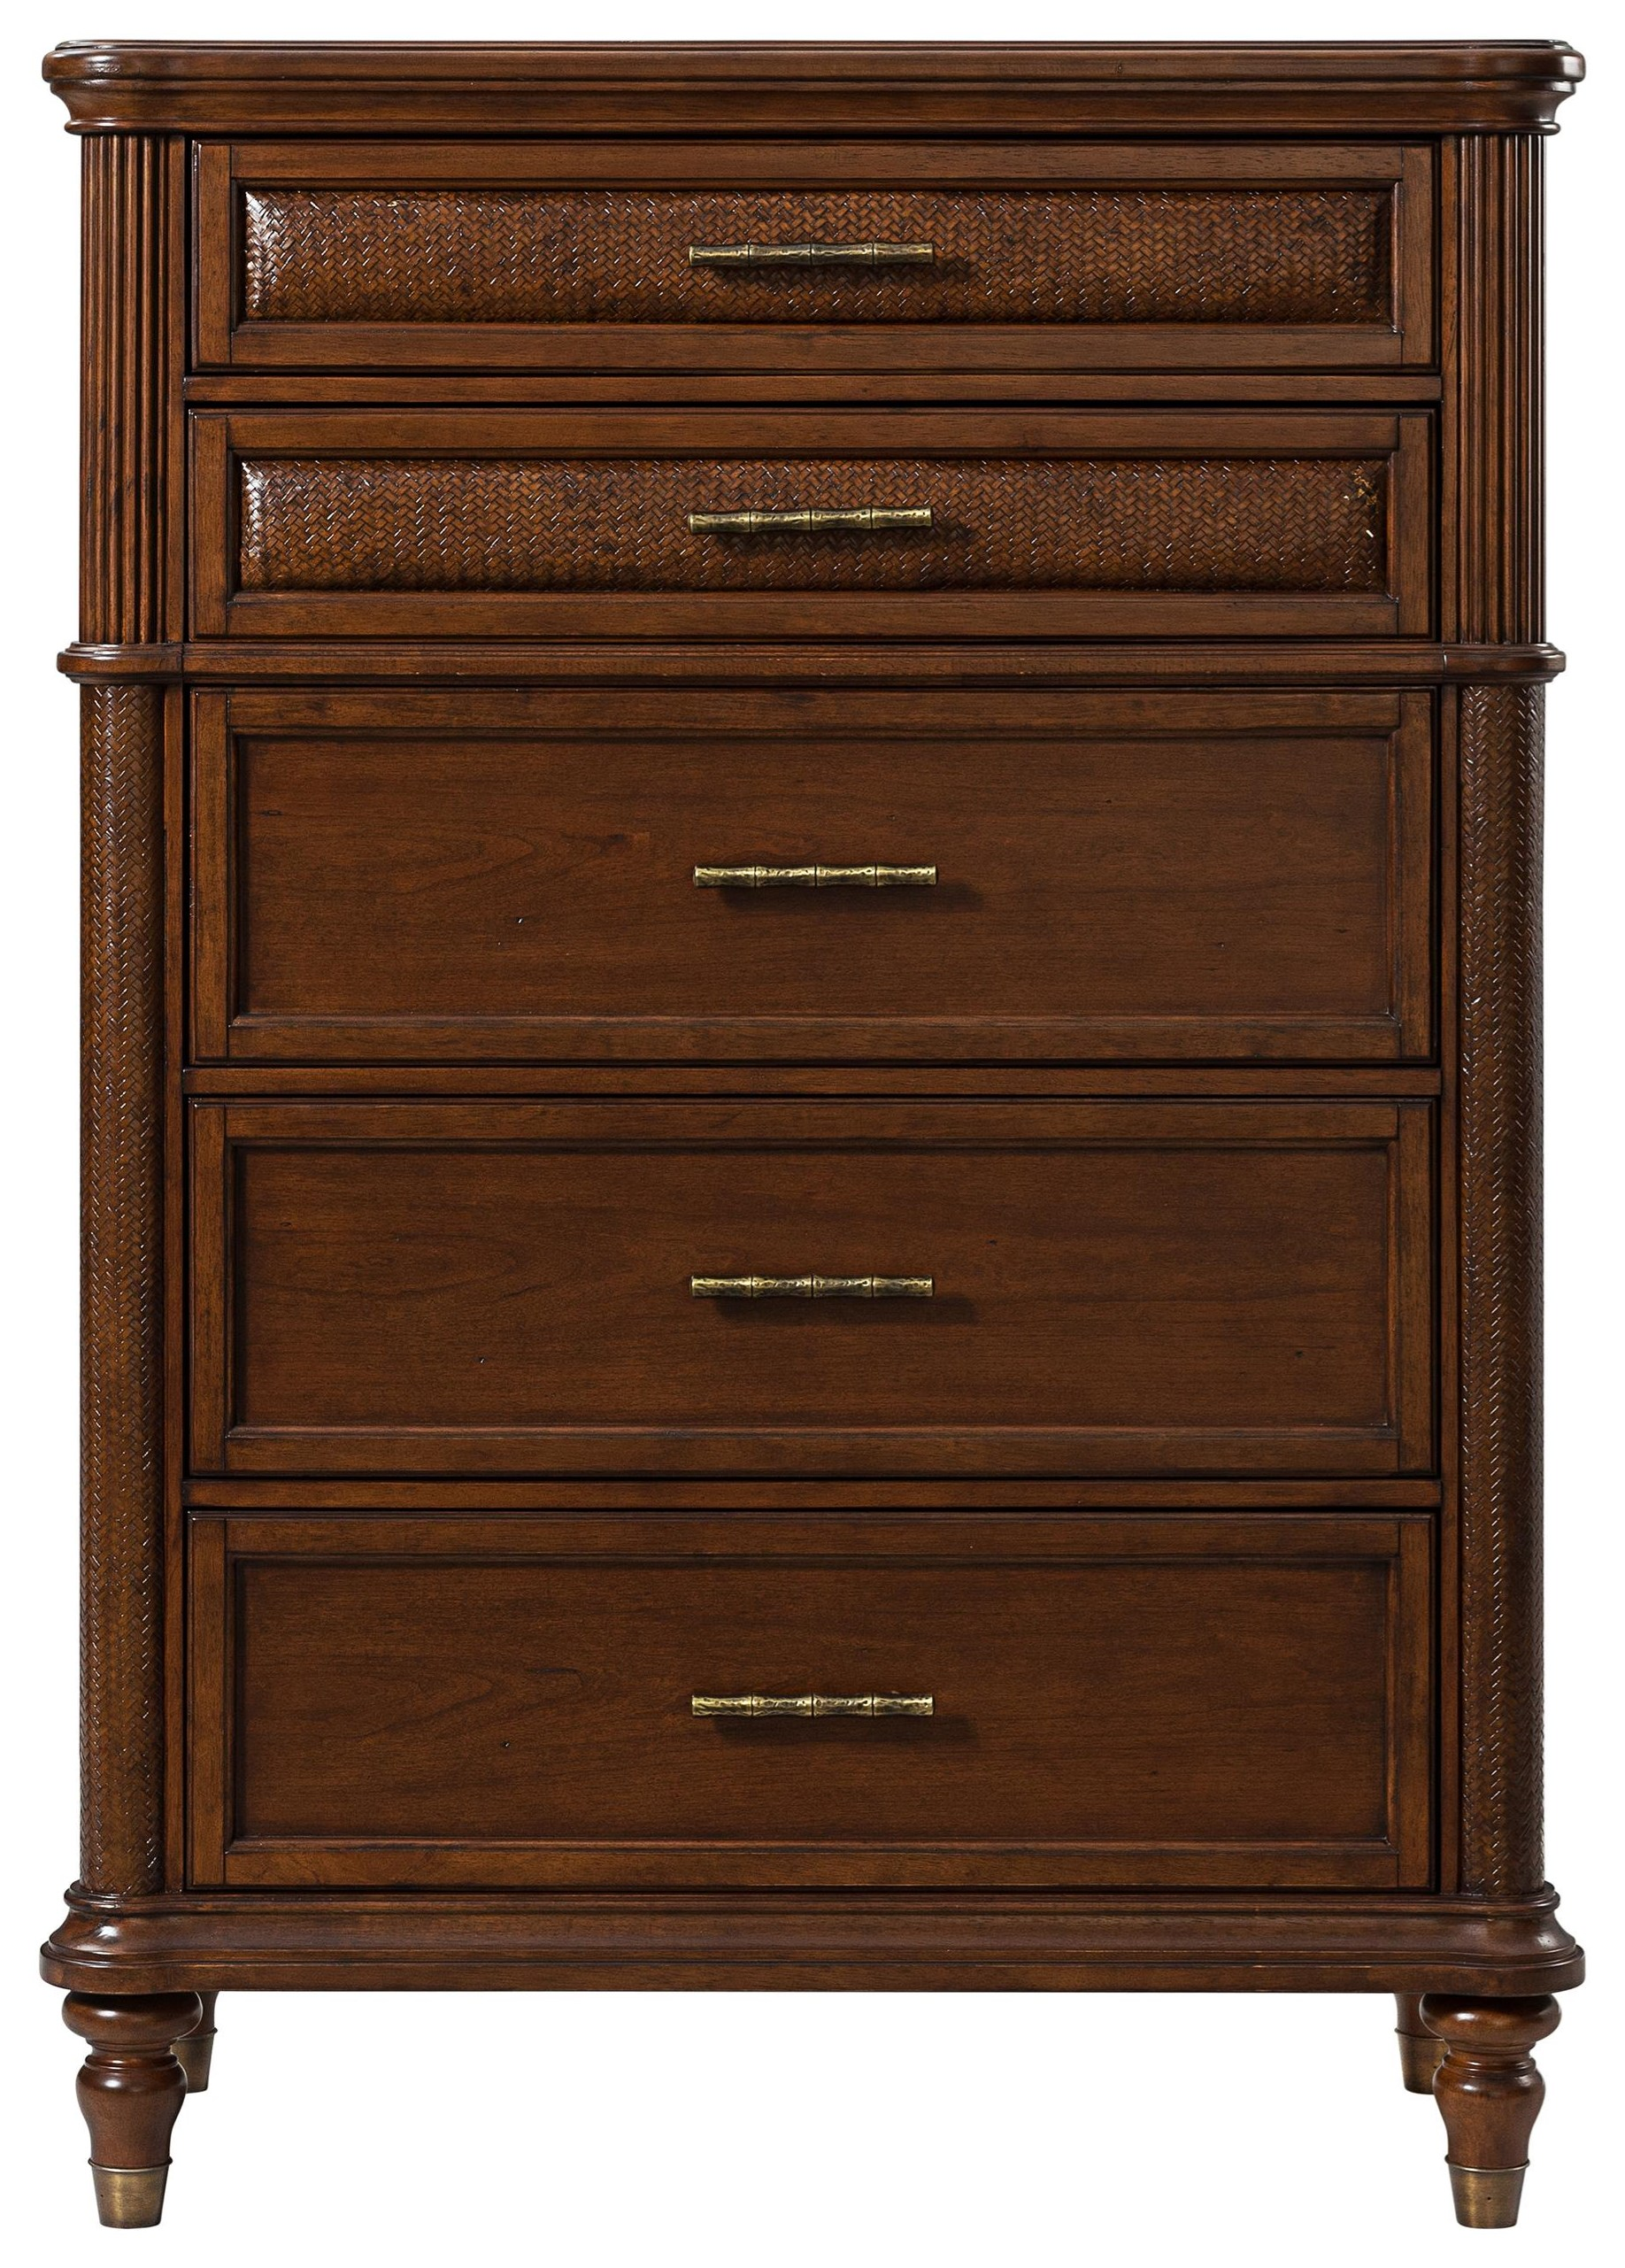 Tropical Breeze Tall Chest by Stillwater Furniture at Baer's Furniture